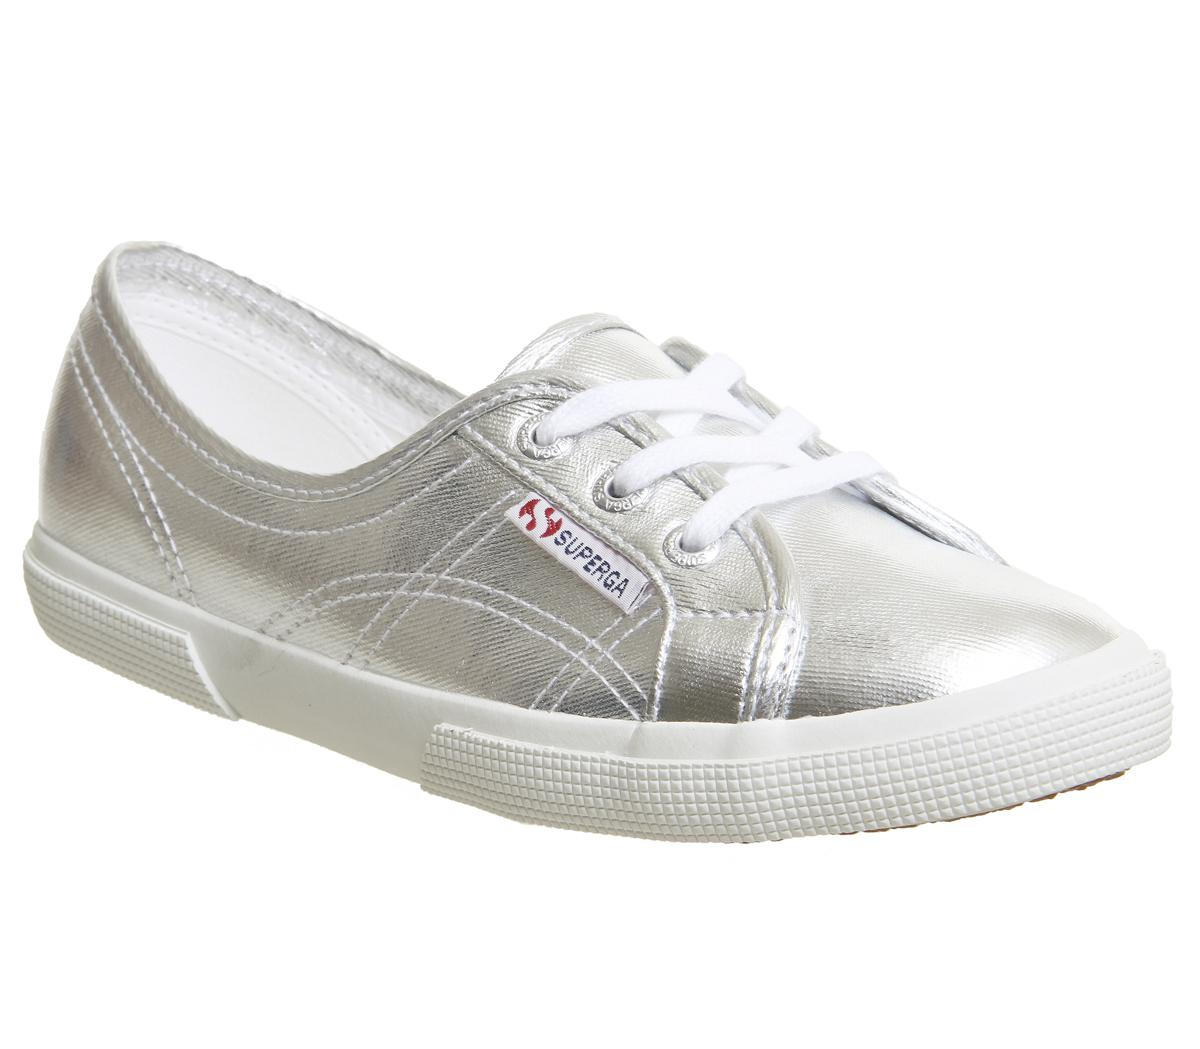 Superga 2211 Silver White - Hers trainers